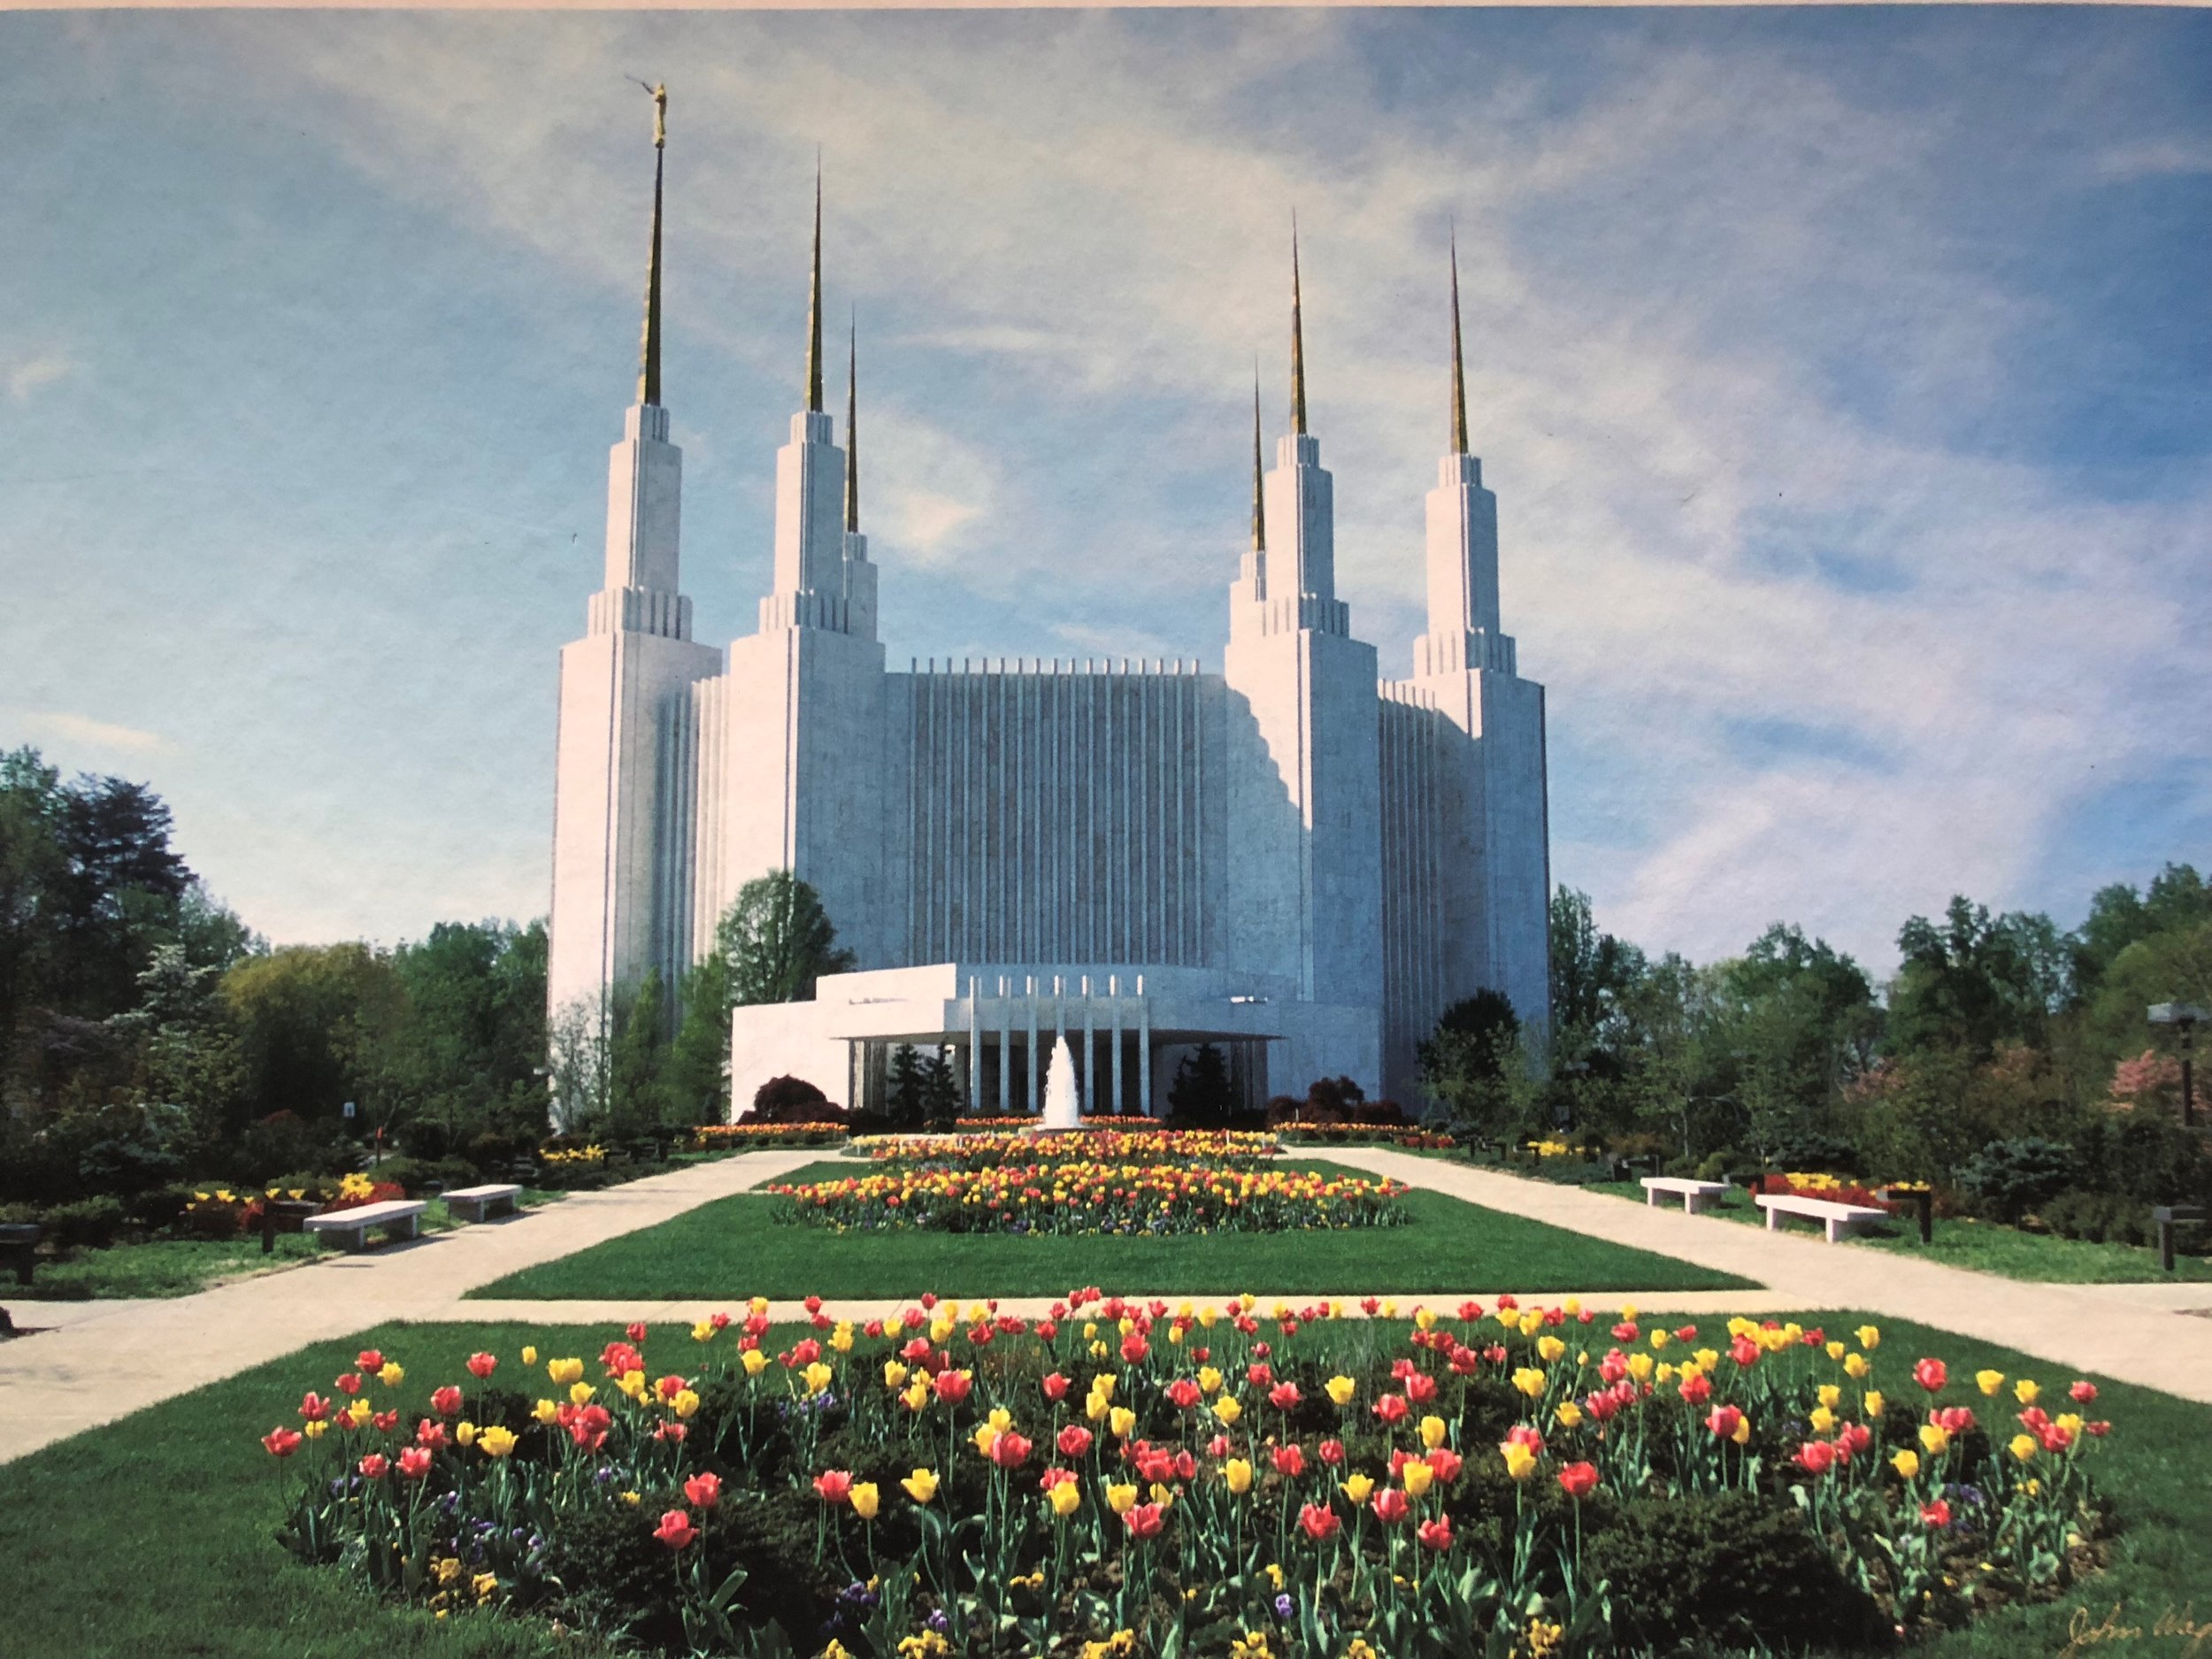 The LDS temple in Washington, D.C. - a place full of sacred moments where I could always find peace.